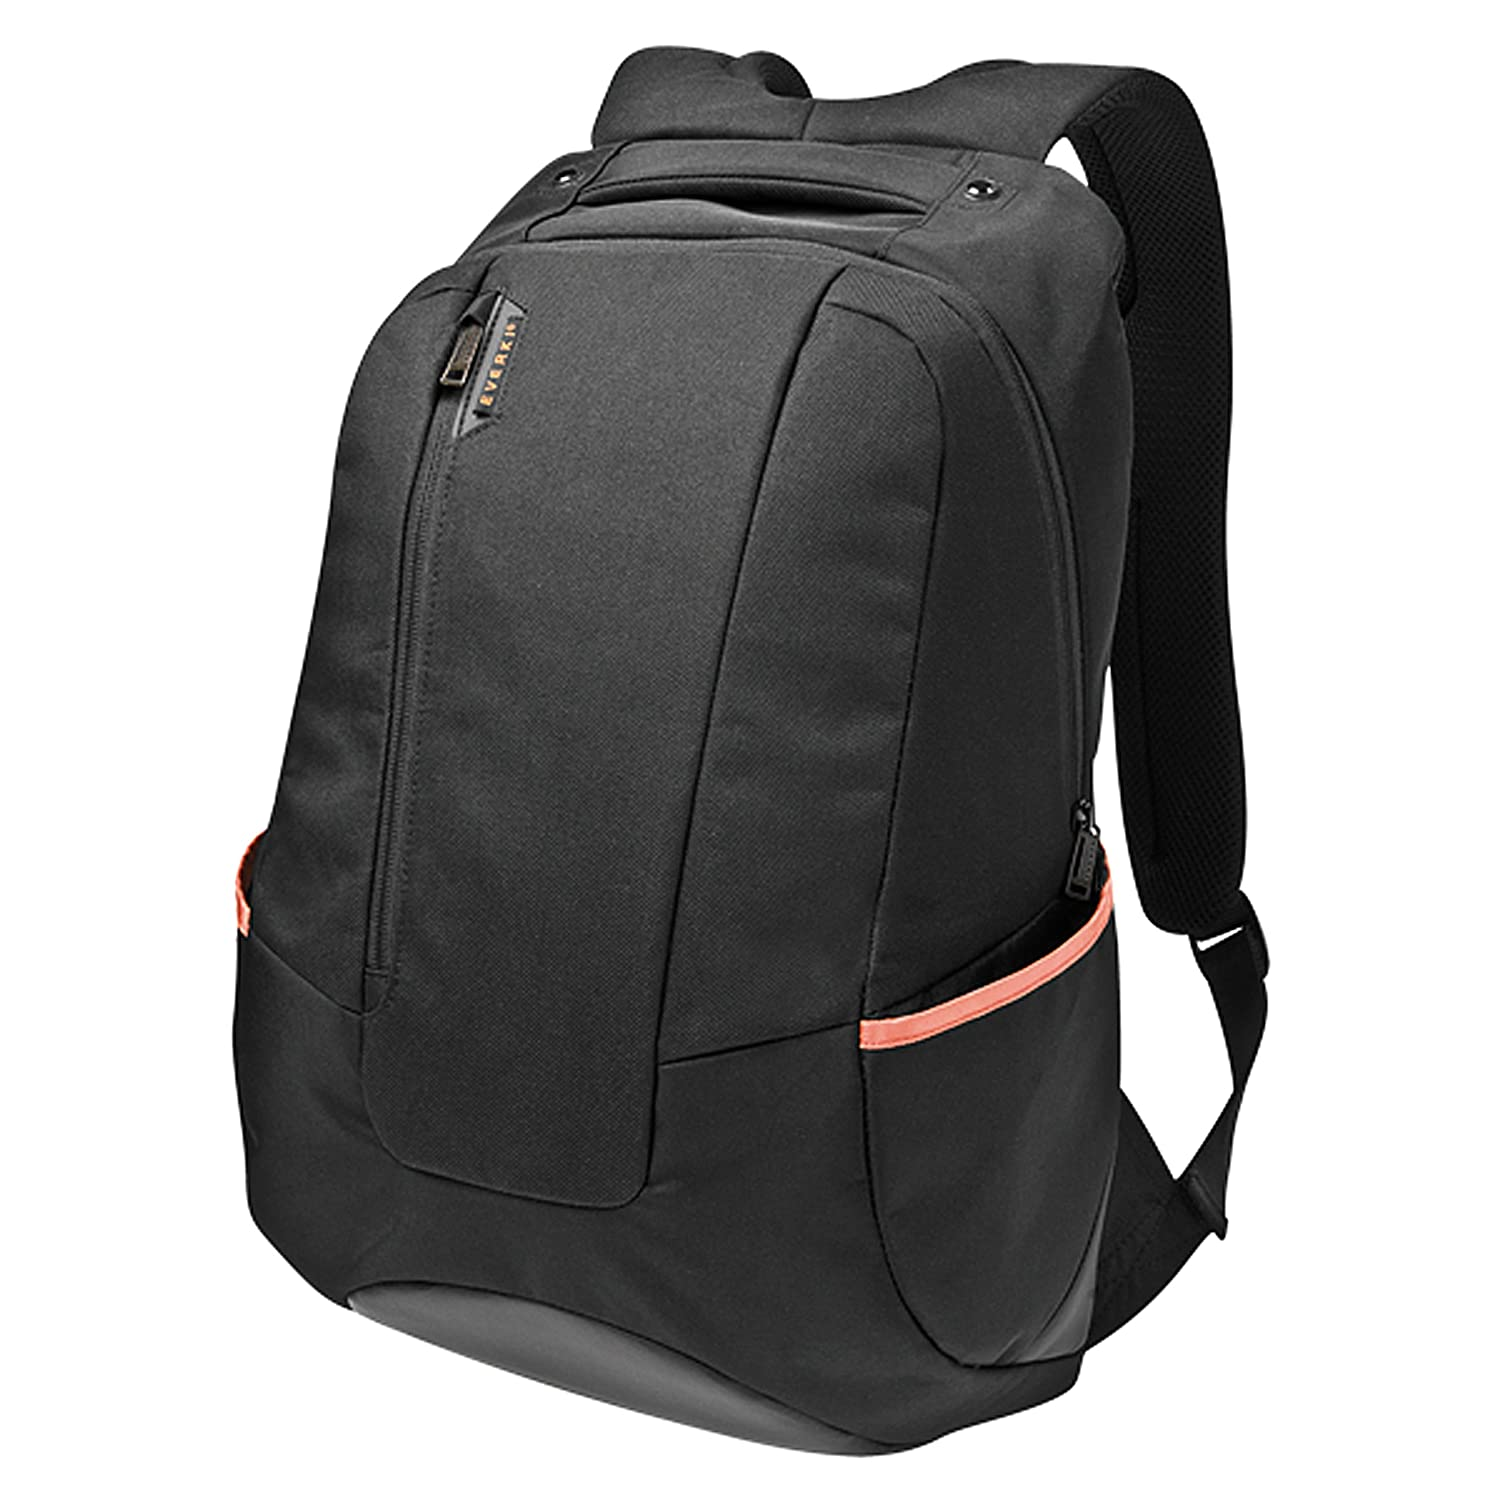 Everki Swift Laptop Rucksack